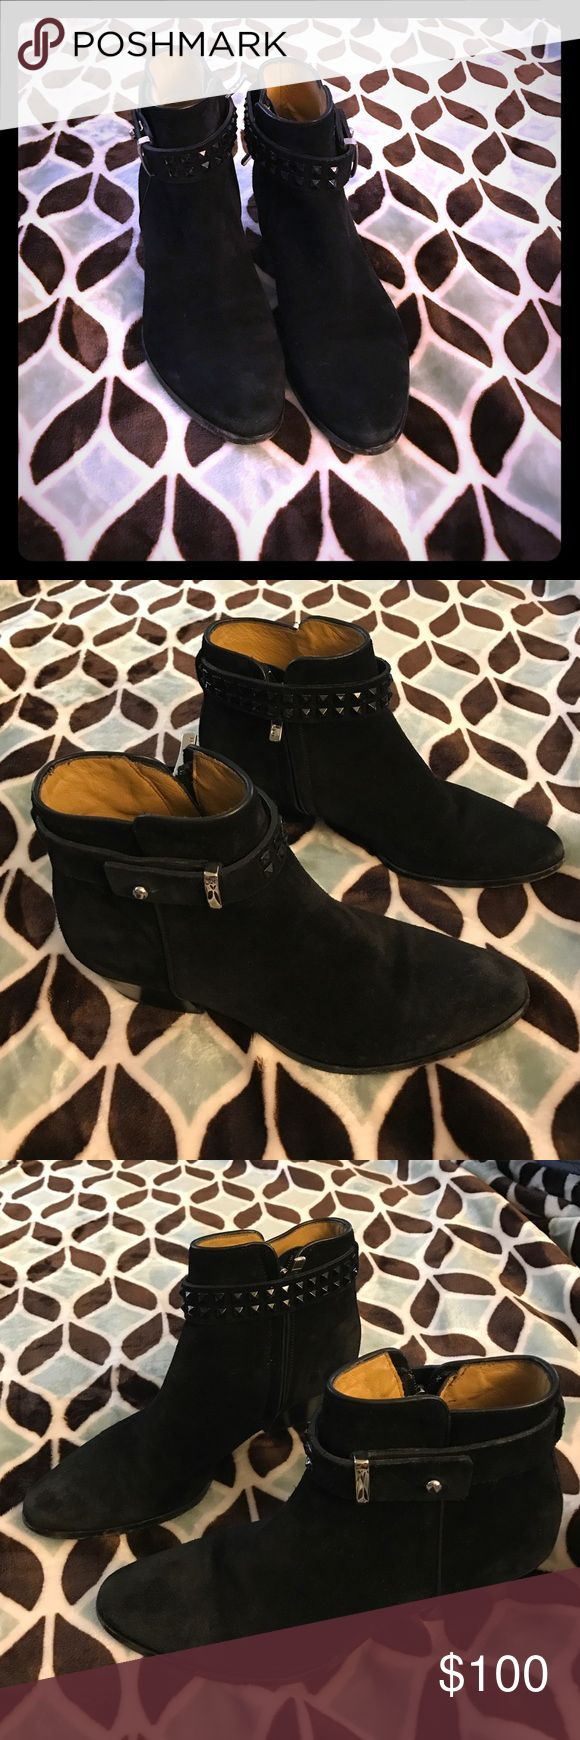 Black Nappa leather studded ankle boots Nice looking boots BARBARA BUI Shoes Ankle Boots & Booties